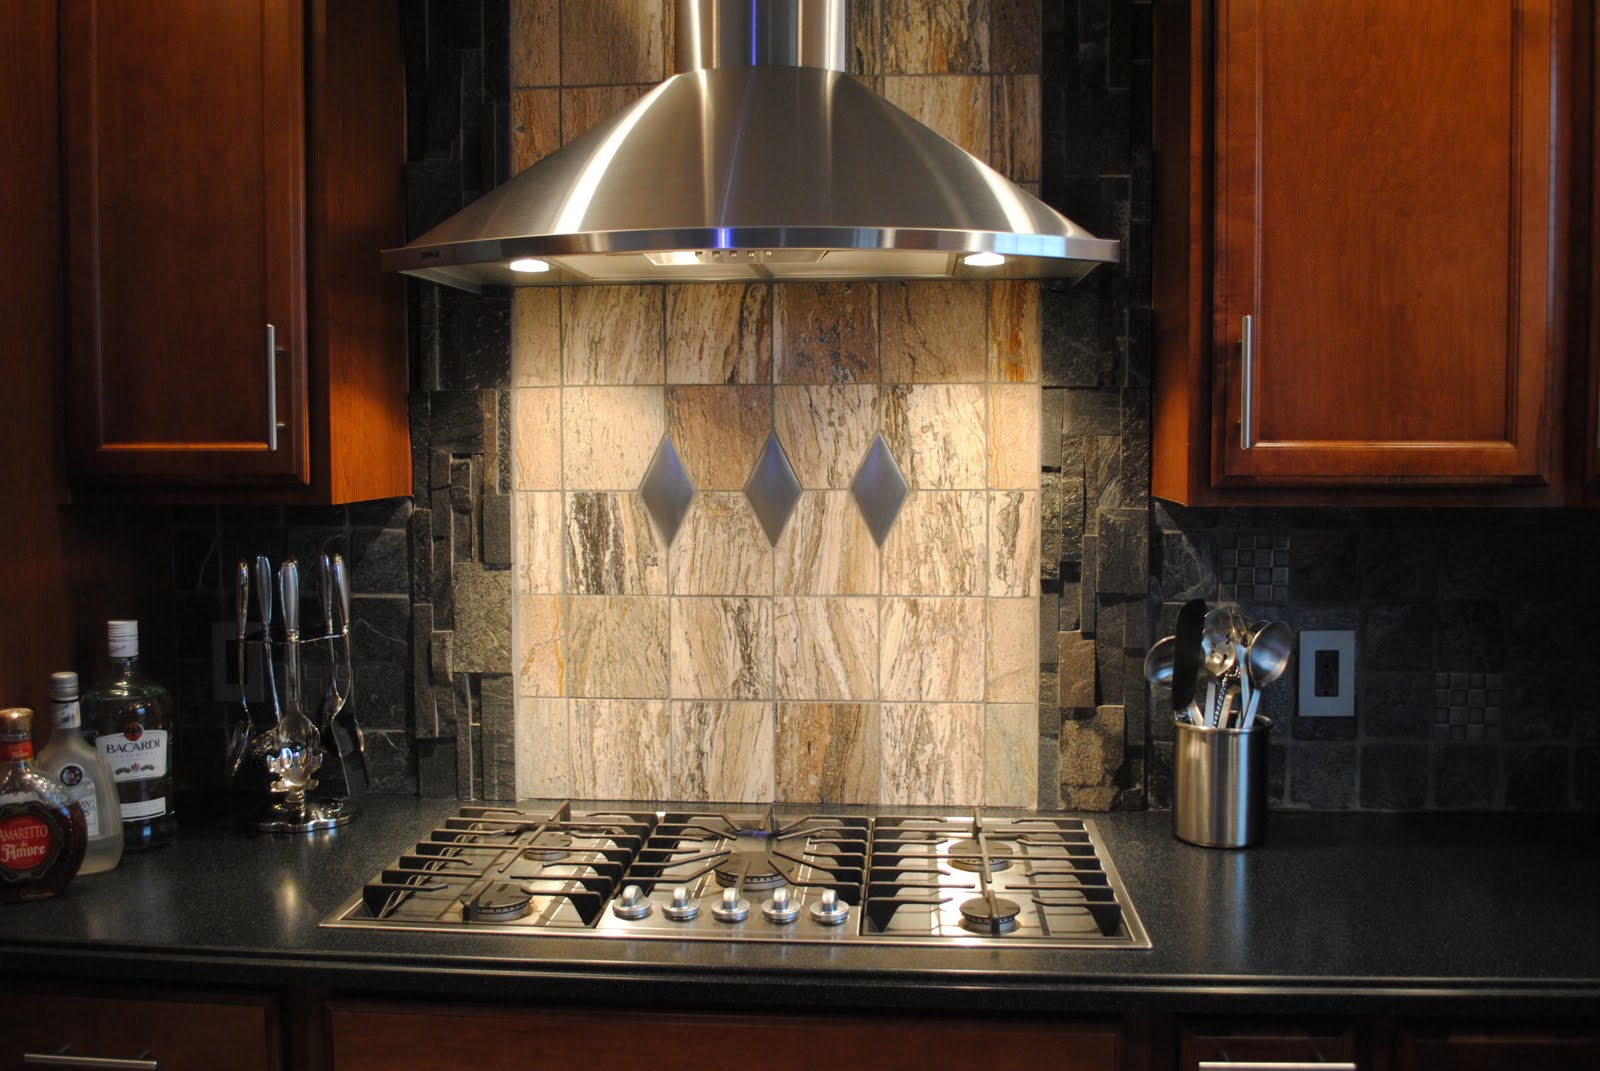 Stone Kitchen Backsplash Designs